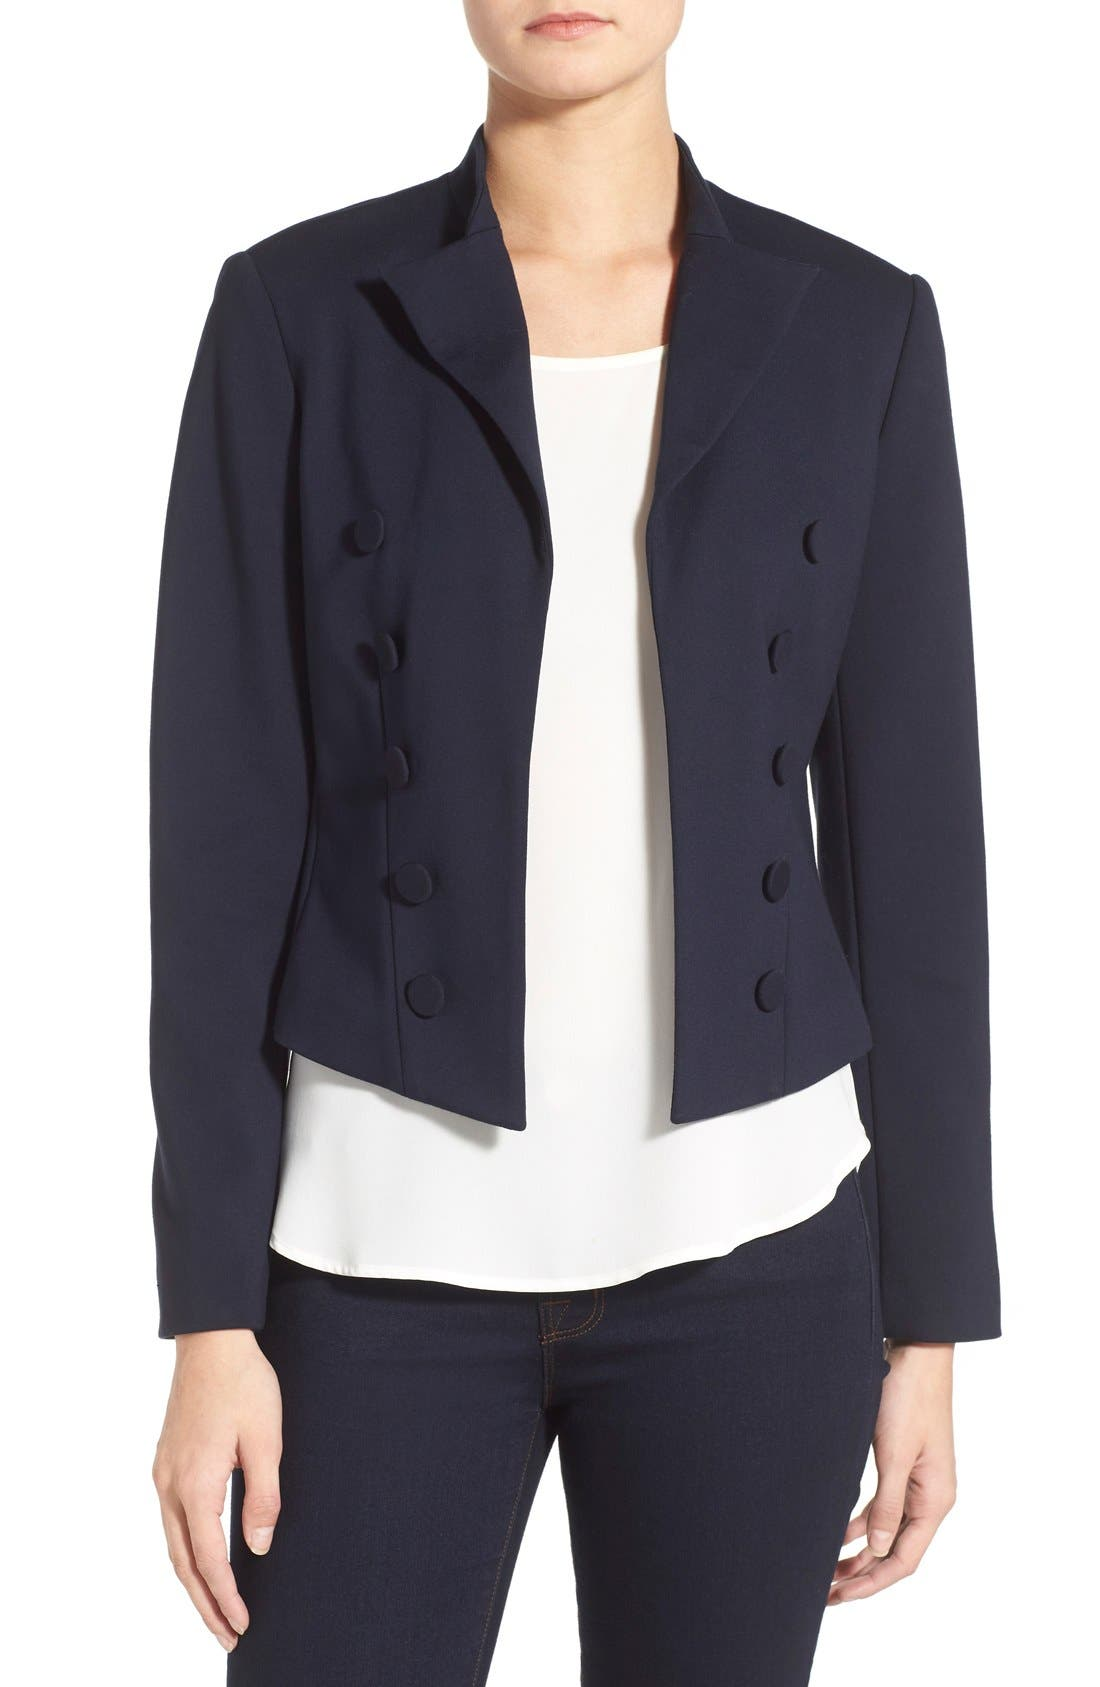 Alternate Image 1 Selected - Ellen Tracy Double Breasted Knit Blazer (Regular & Petite)